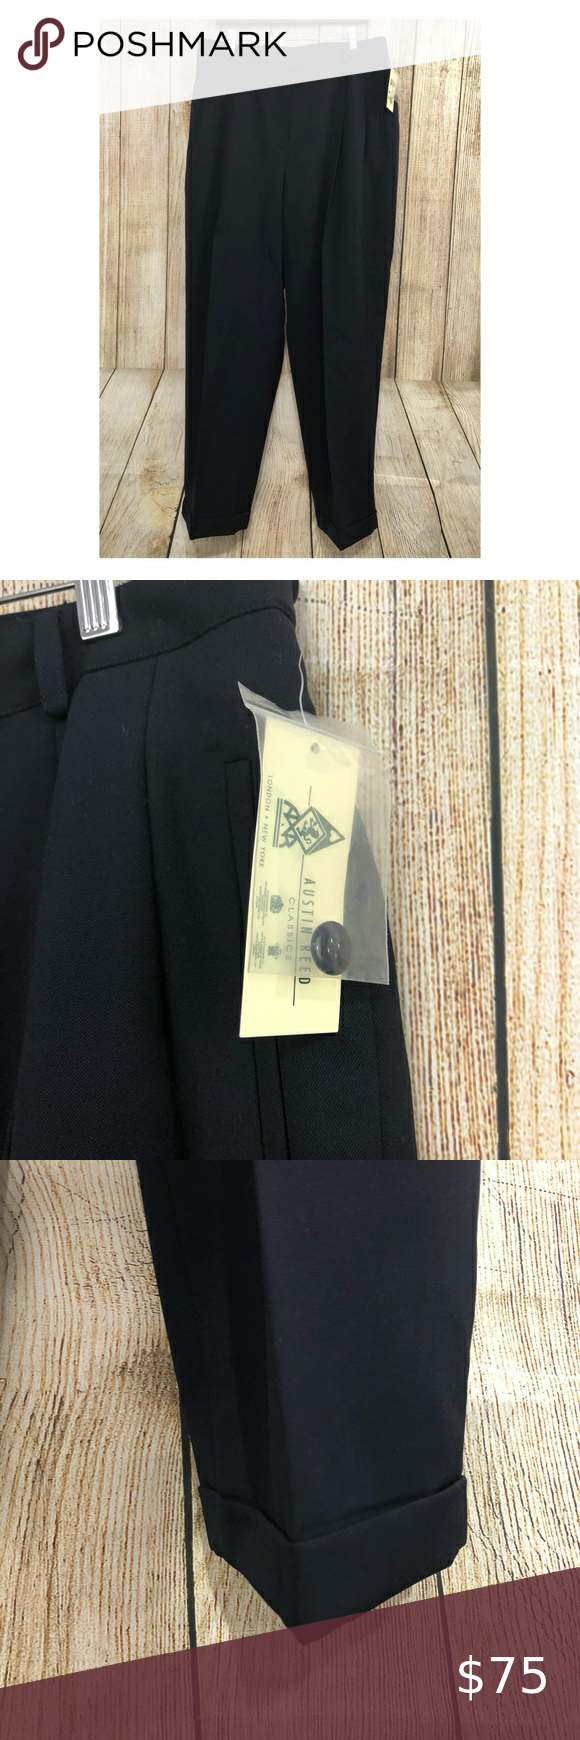 Austin Reed Classic Dress Pants 20w Navy Blue Nwt Dress Pants Womens Dress Pants Classic Dress